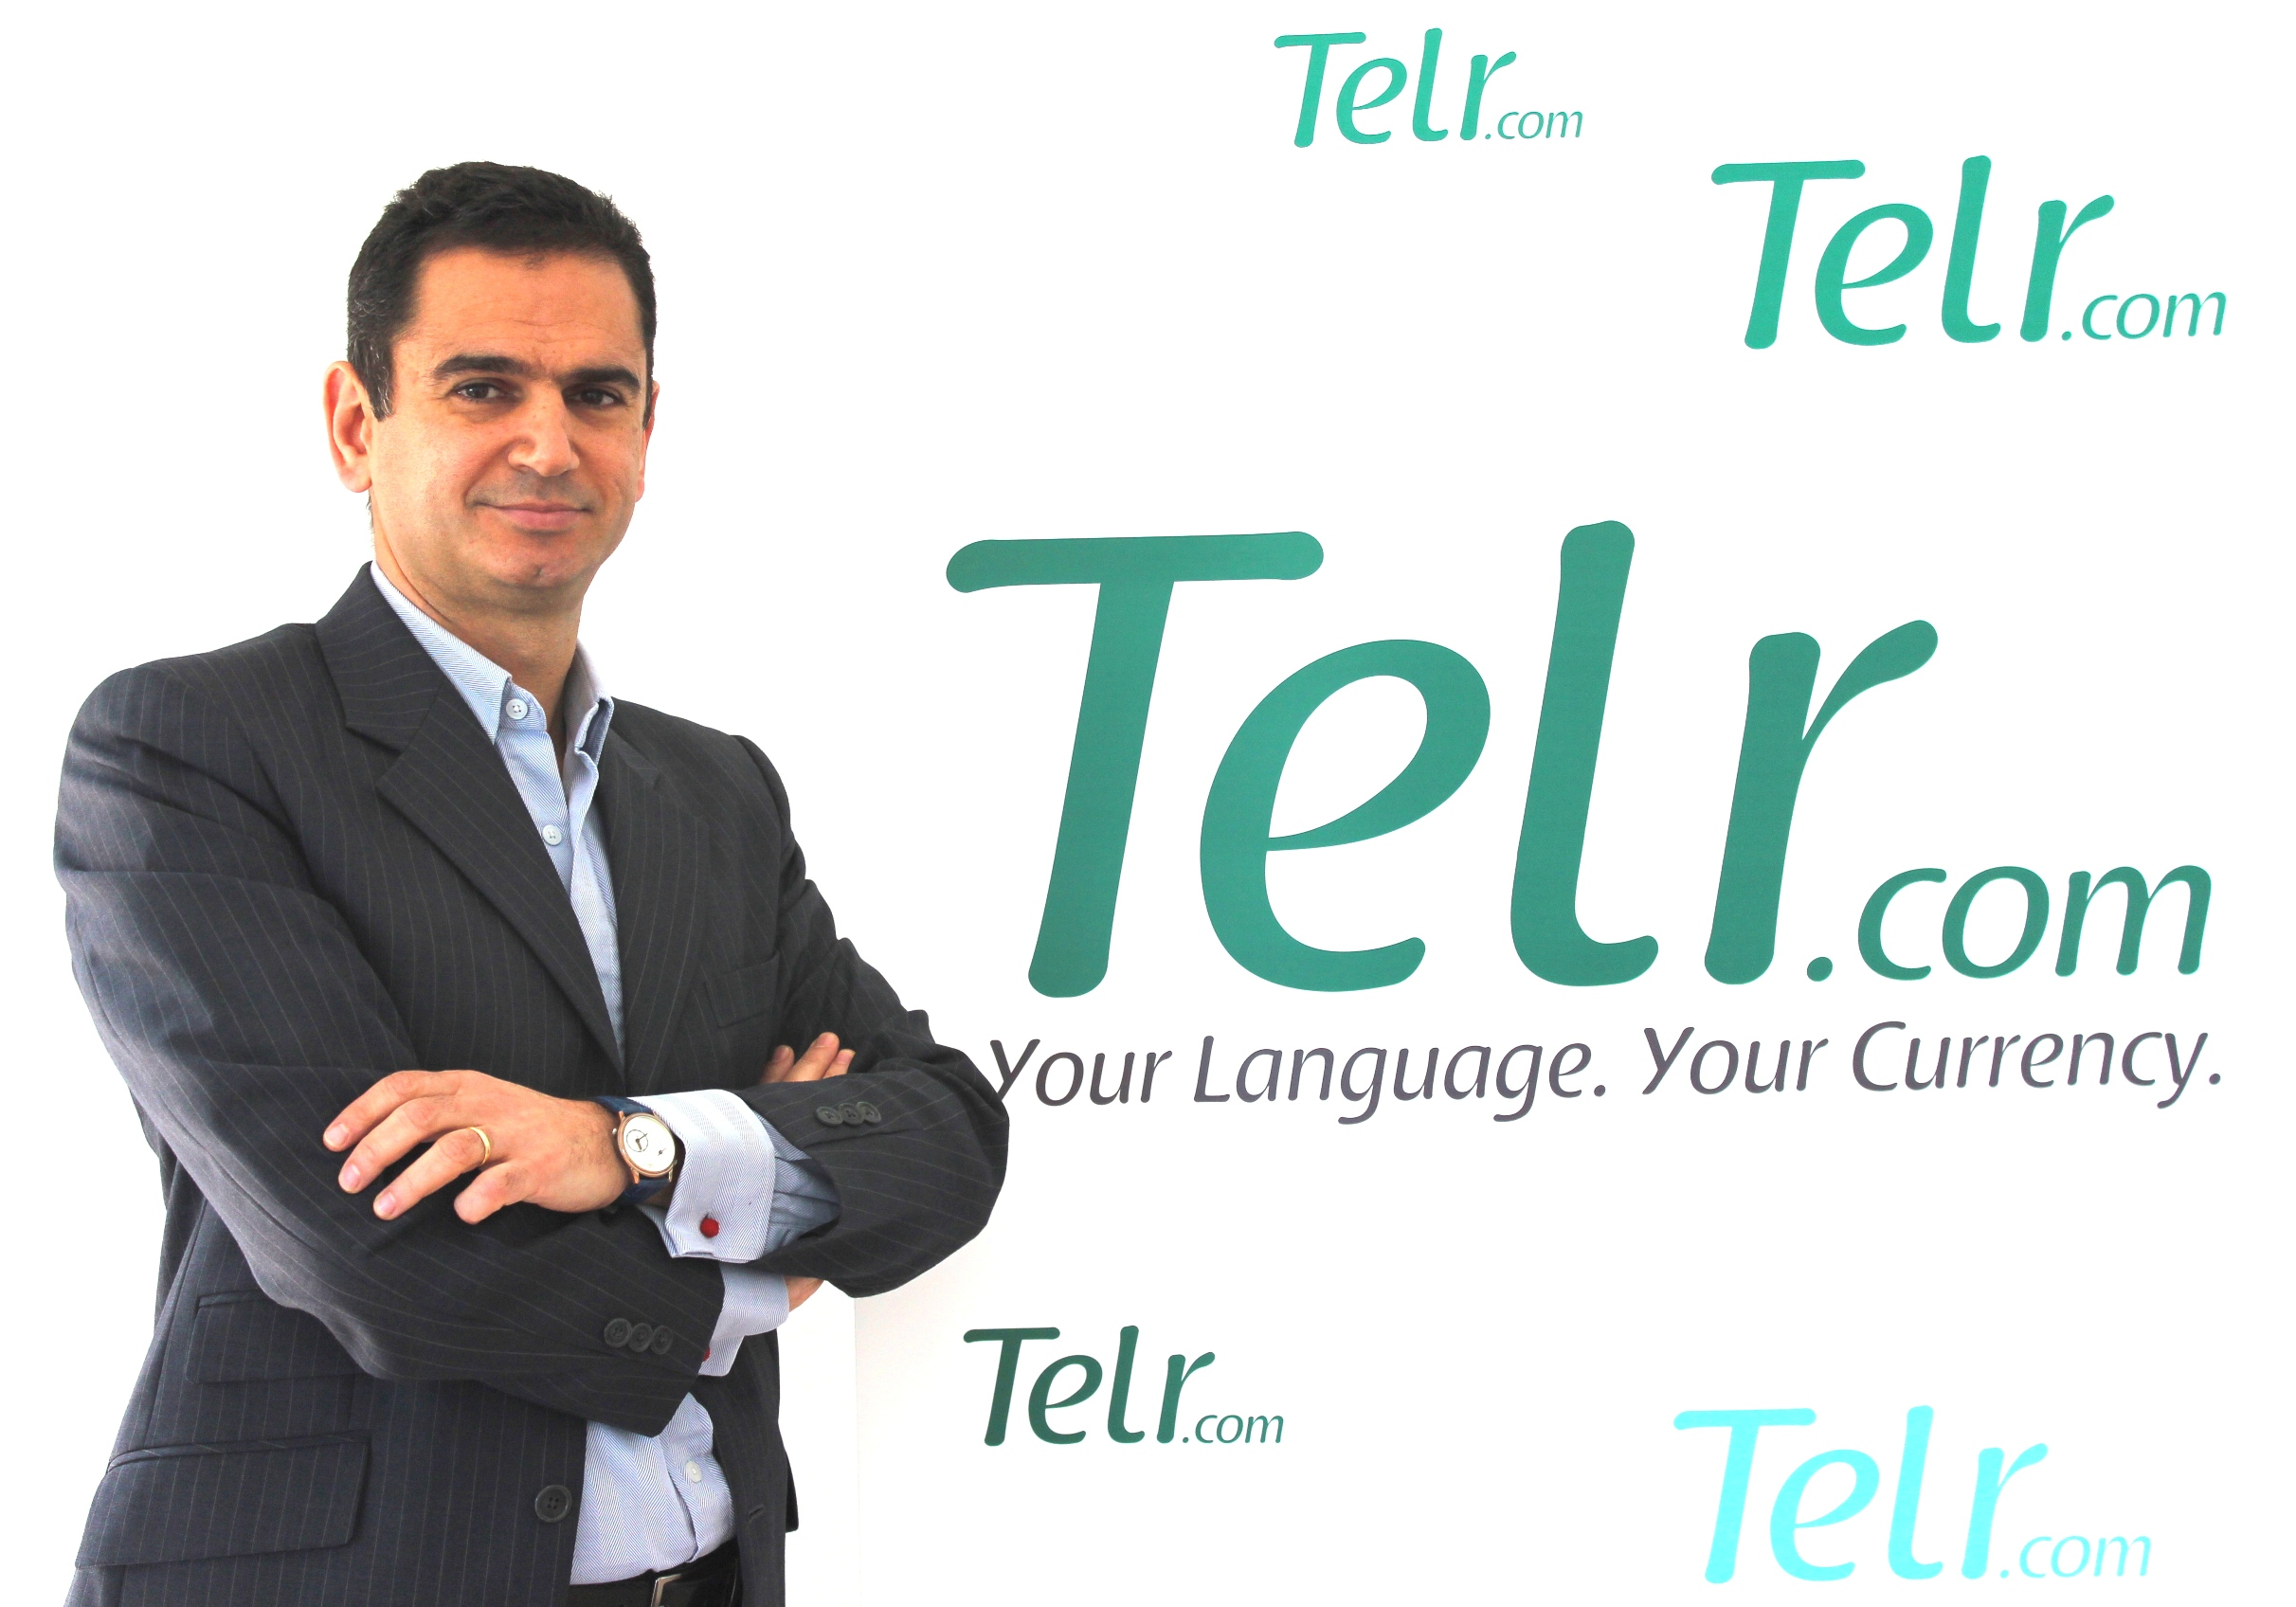 online-payment-platform-telr-secures-investment-in-growth-funding